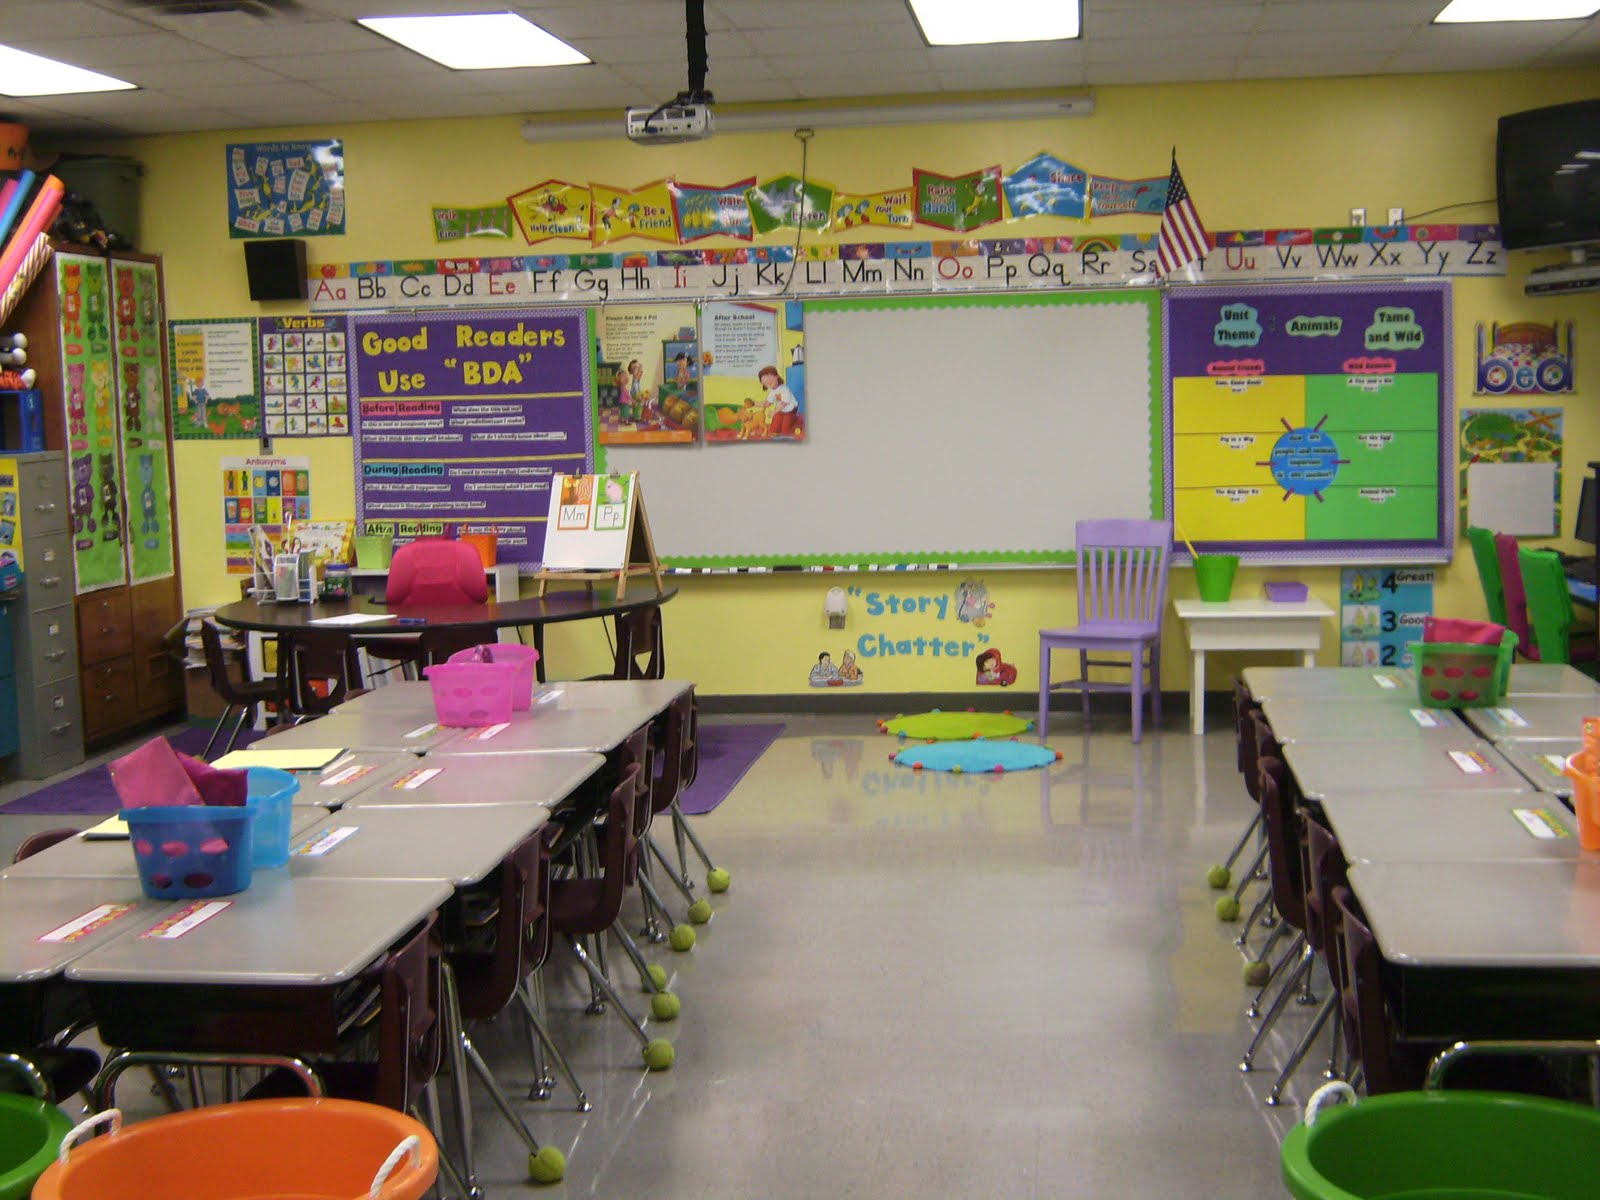 Classroom Ideas Theme ~ Bathroom design ideas yellow home decorating